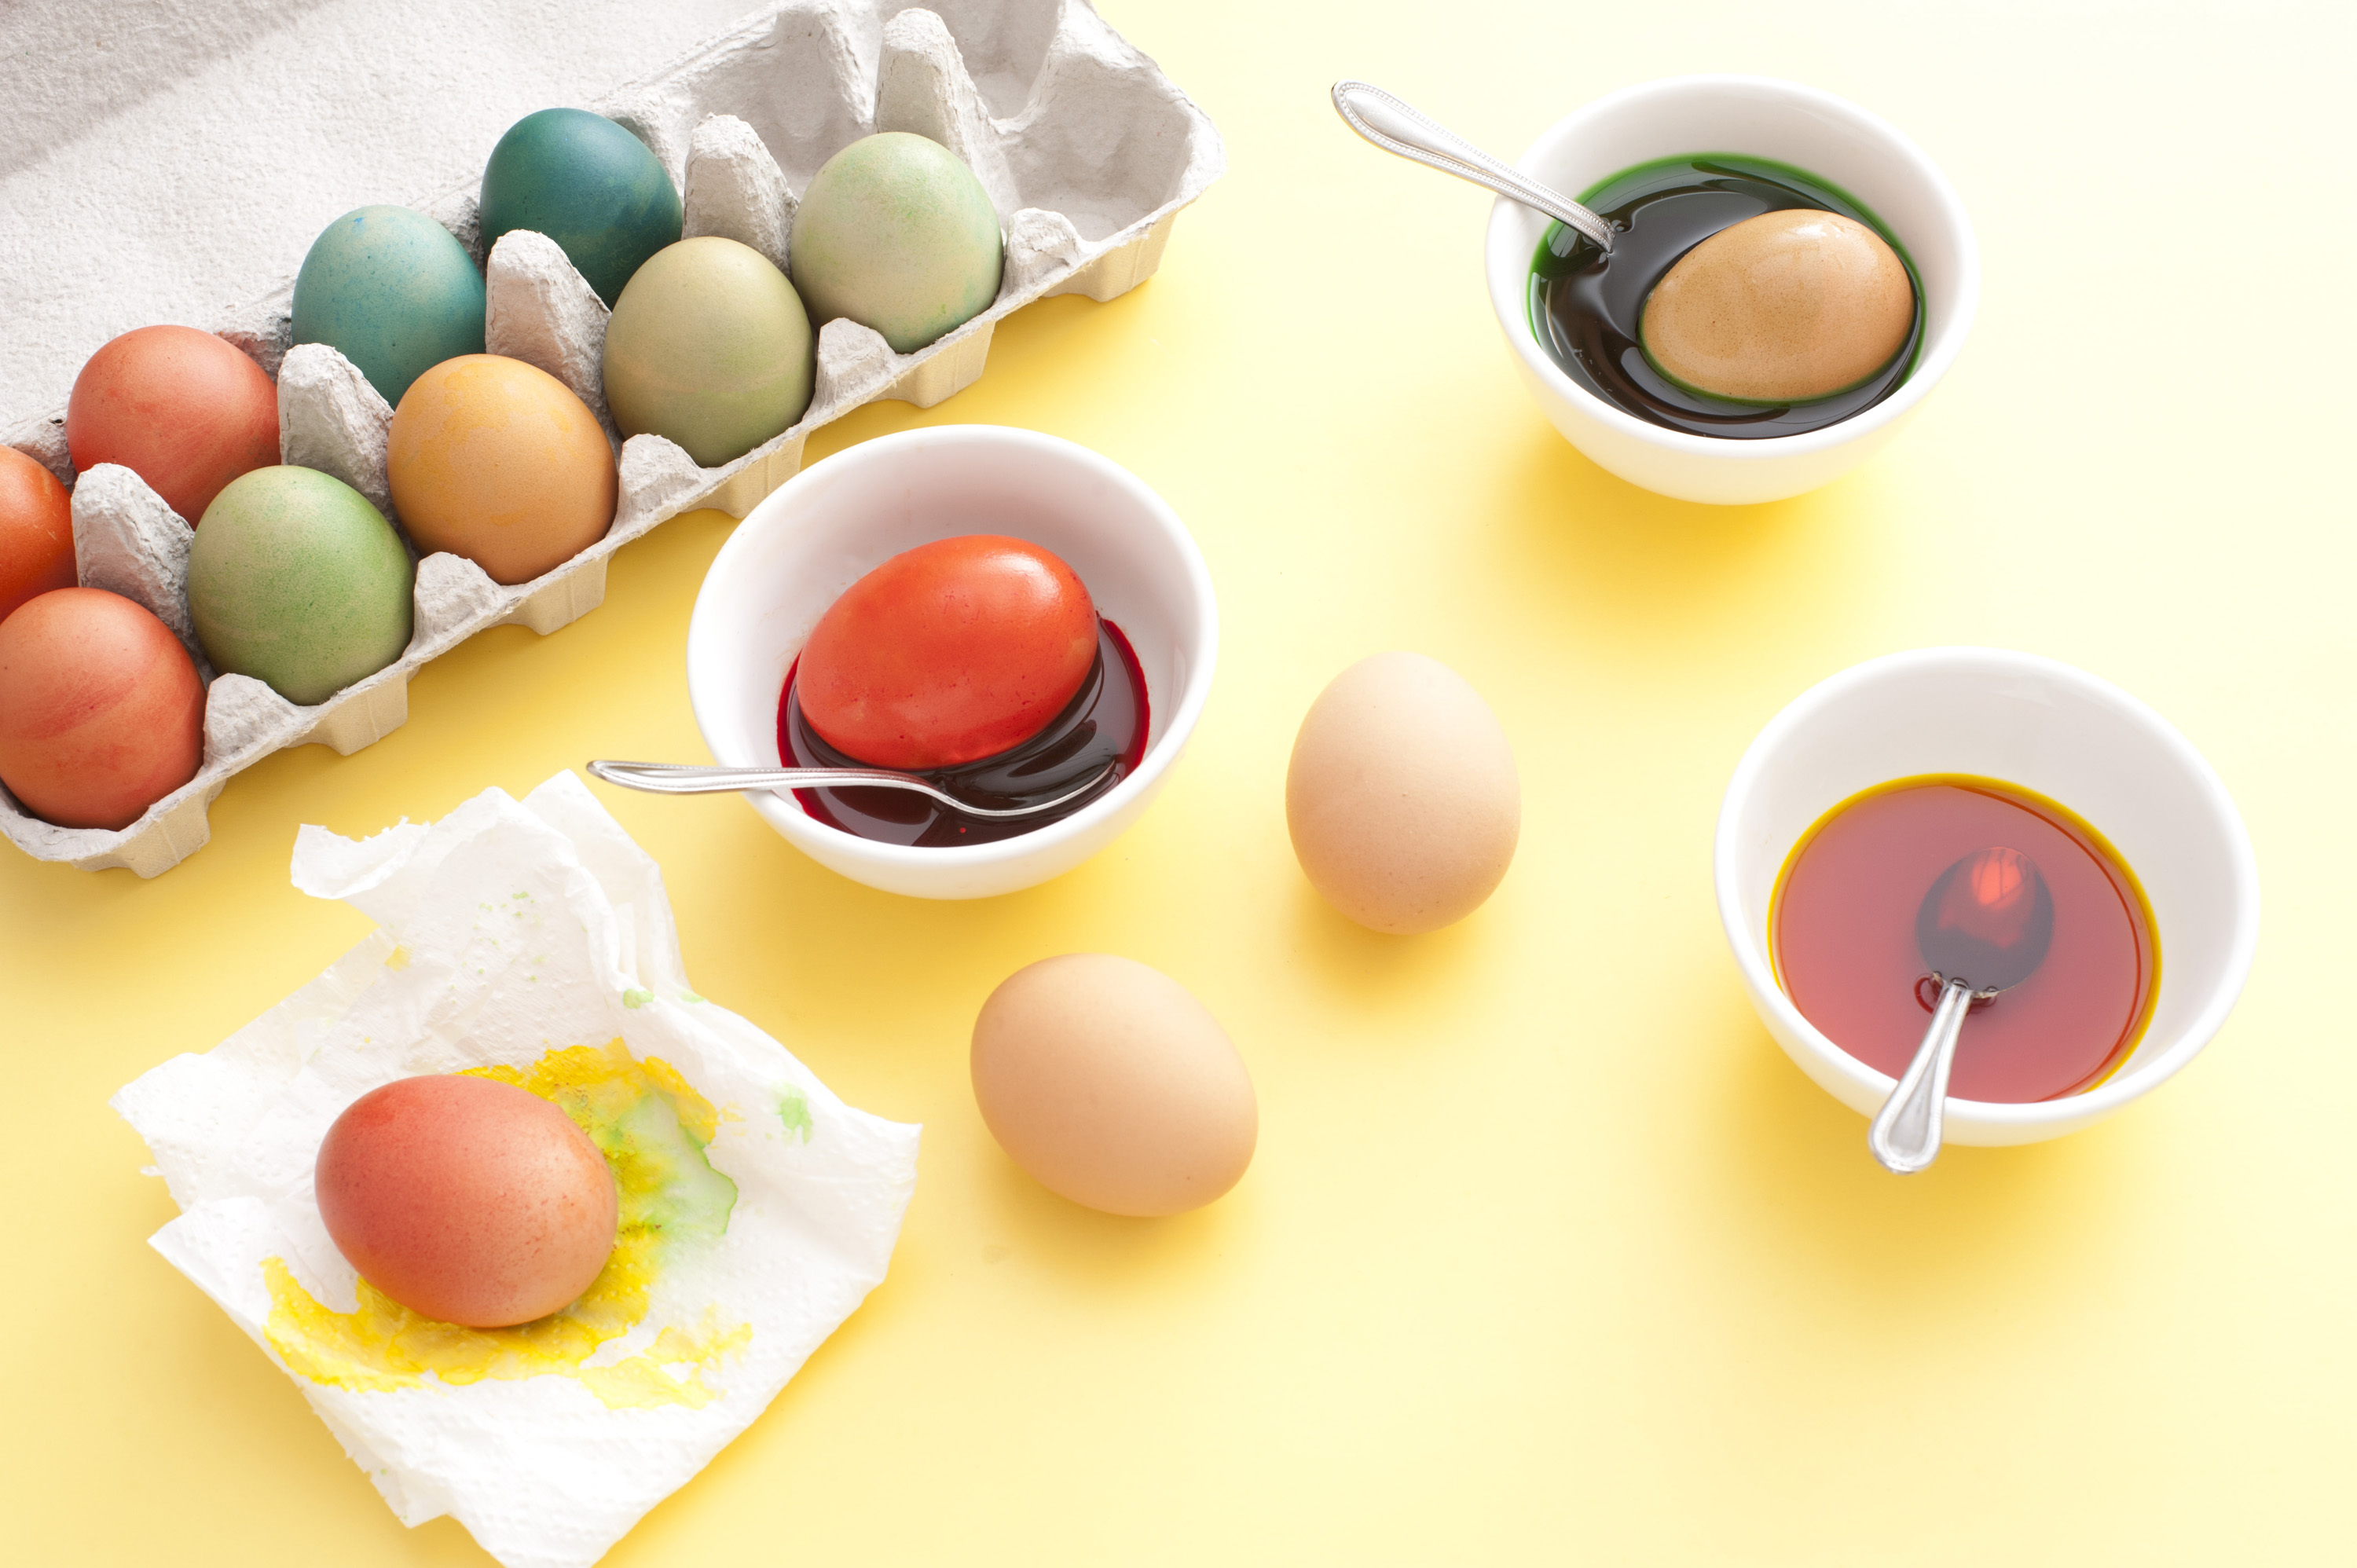 pace_egg_colouring.jpg - From above view of several painted Easter eggs in box and process of dyeing with different colors using bowls and spoons, over yellow table background